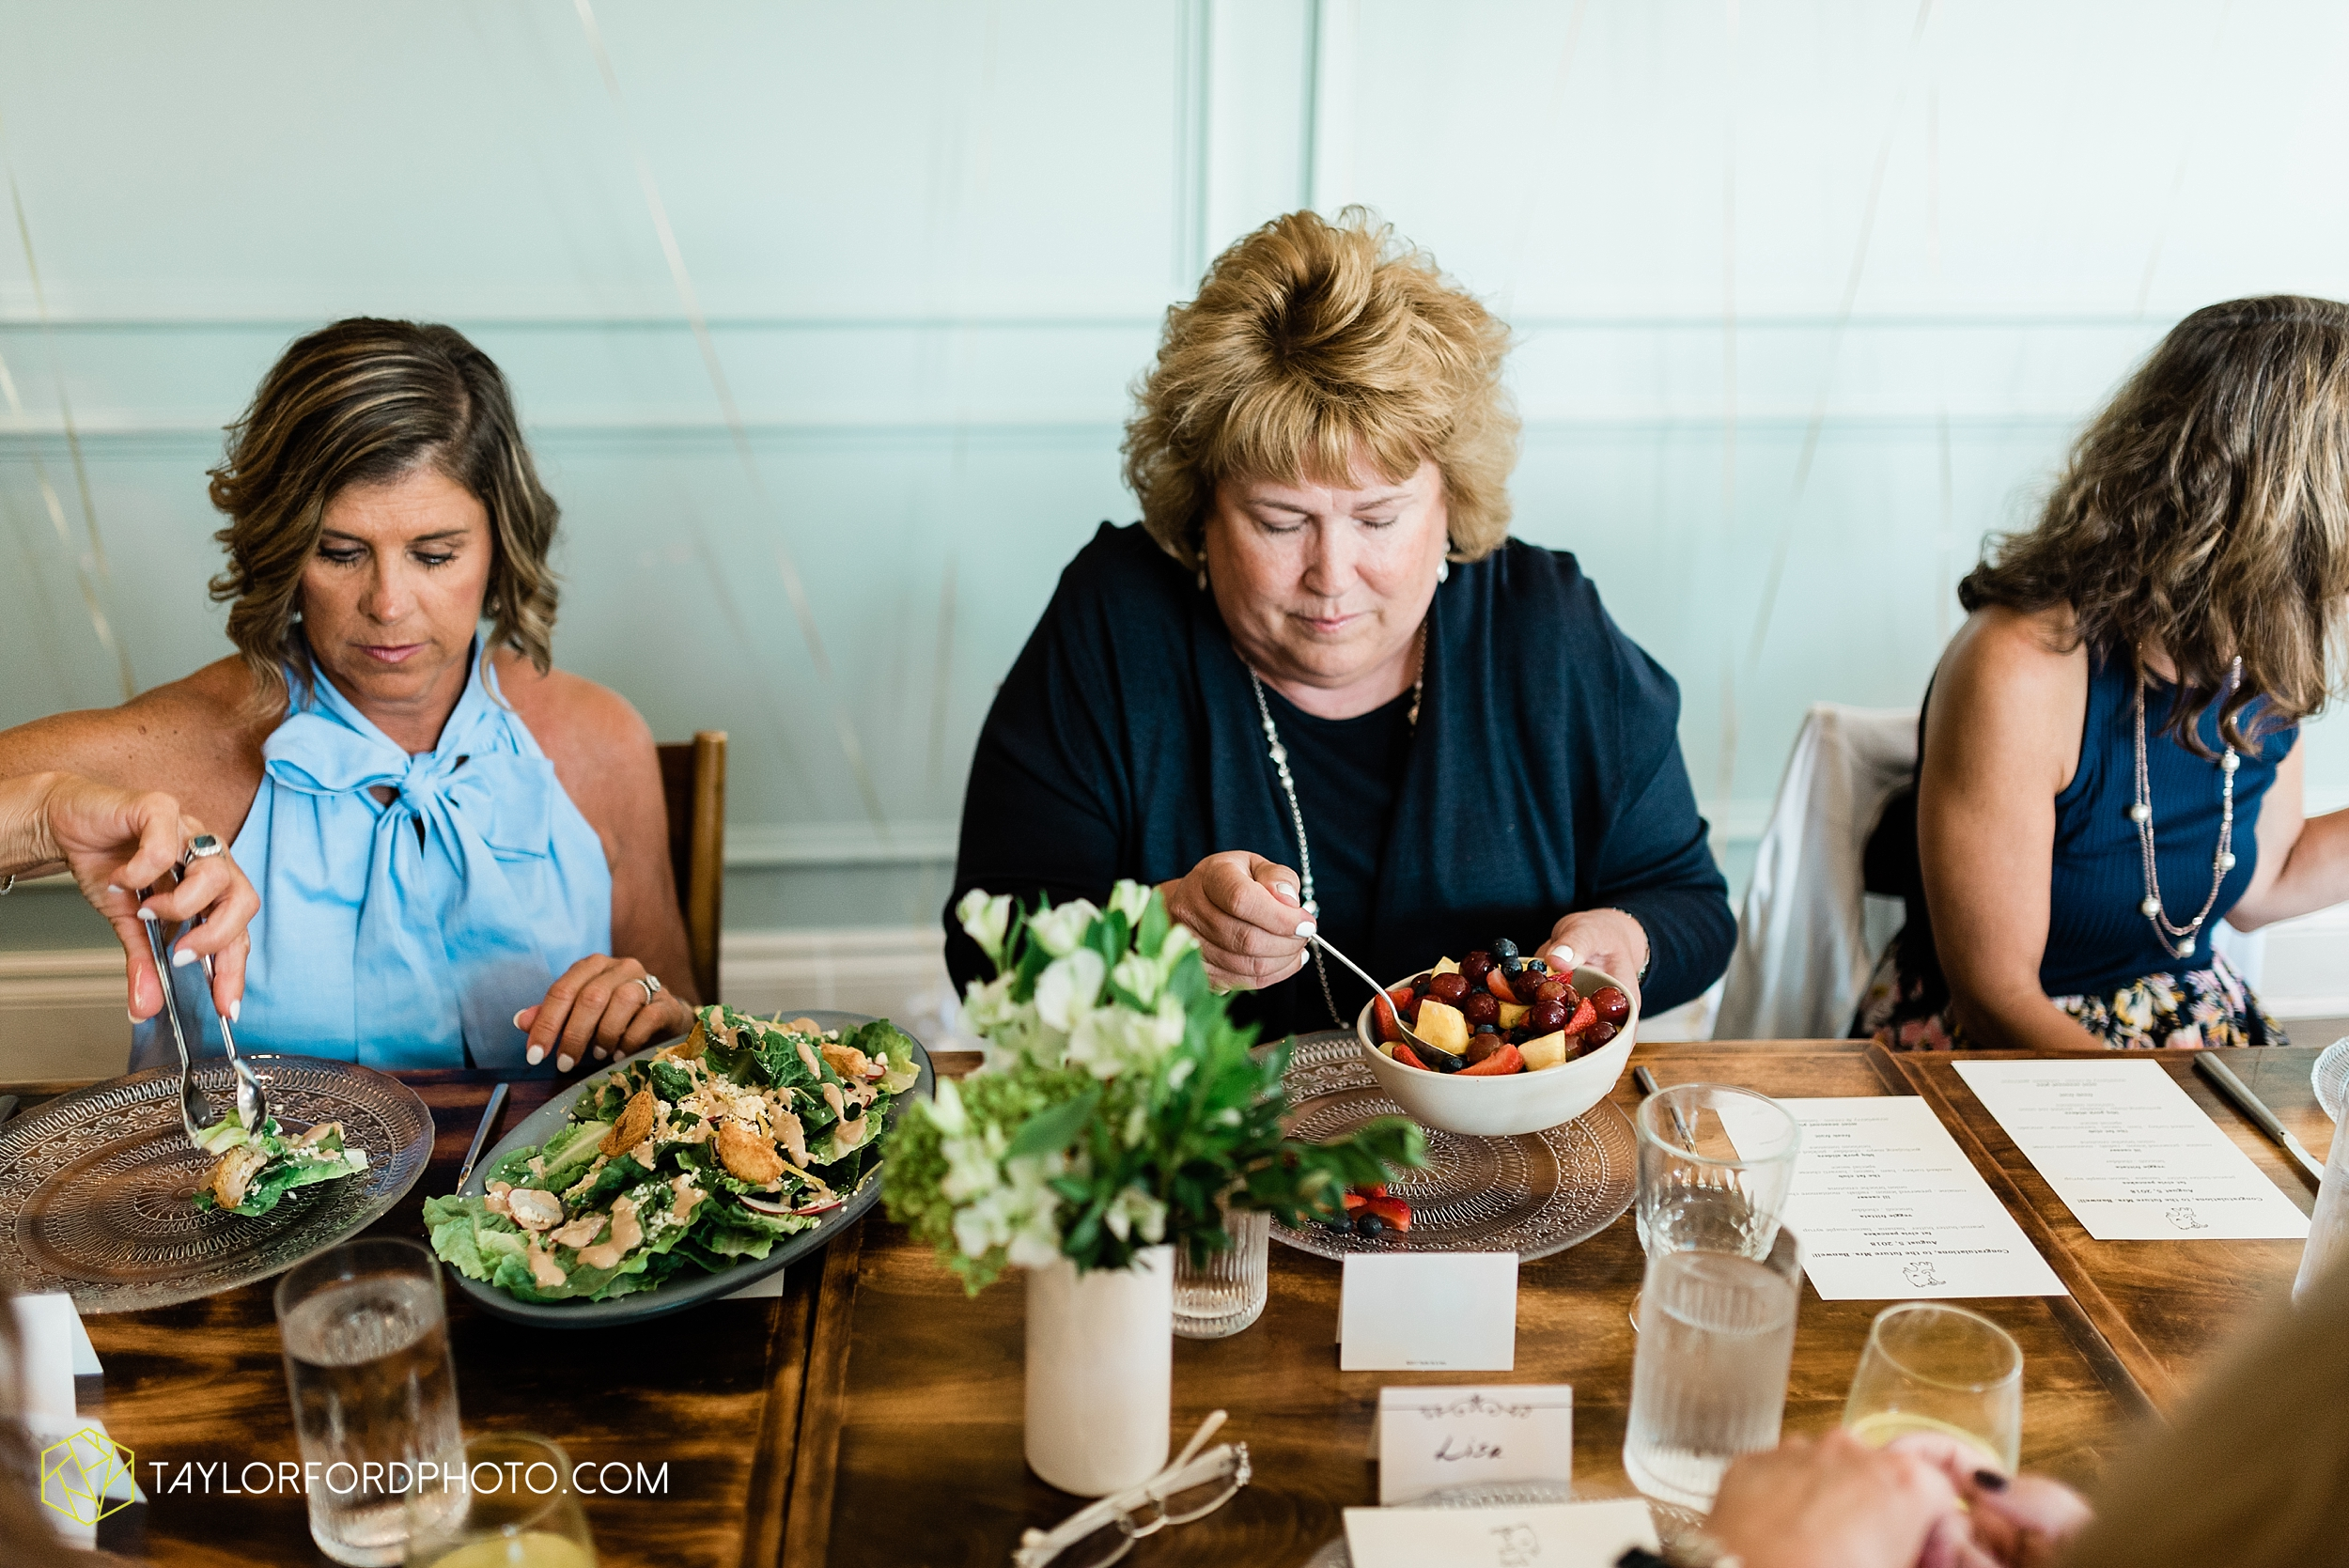 chicago-illinois-bridal-shower-little-goat-diner-west-loop-wedding-photographer-taylor-ford-photographer_8834.jpg